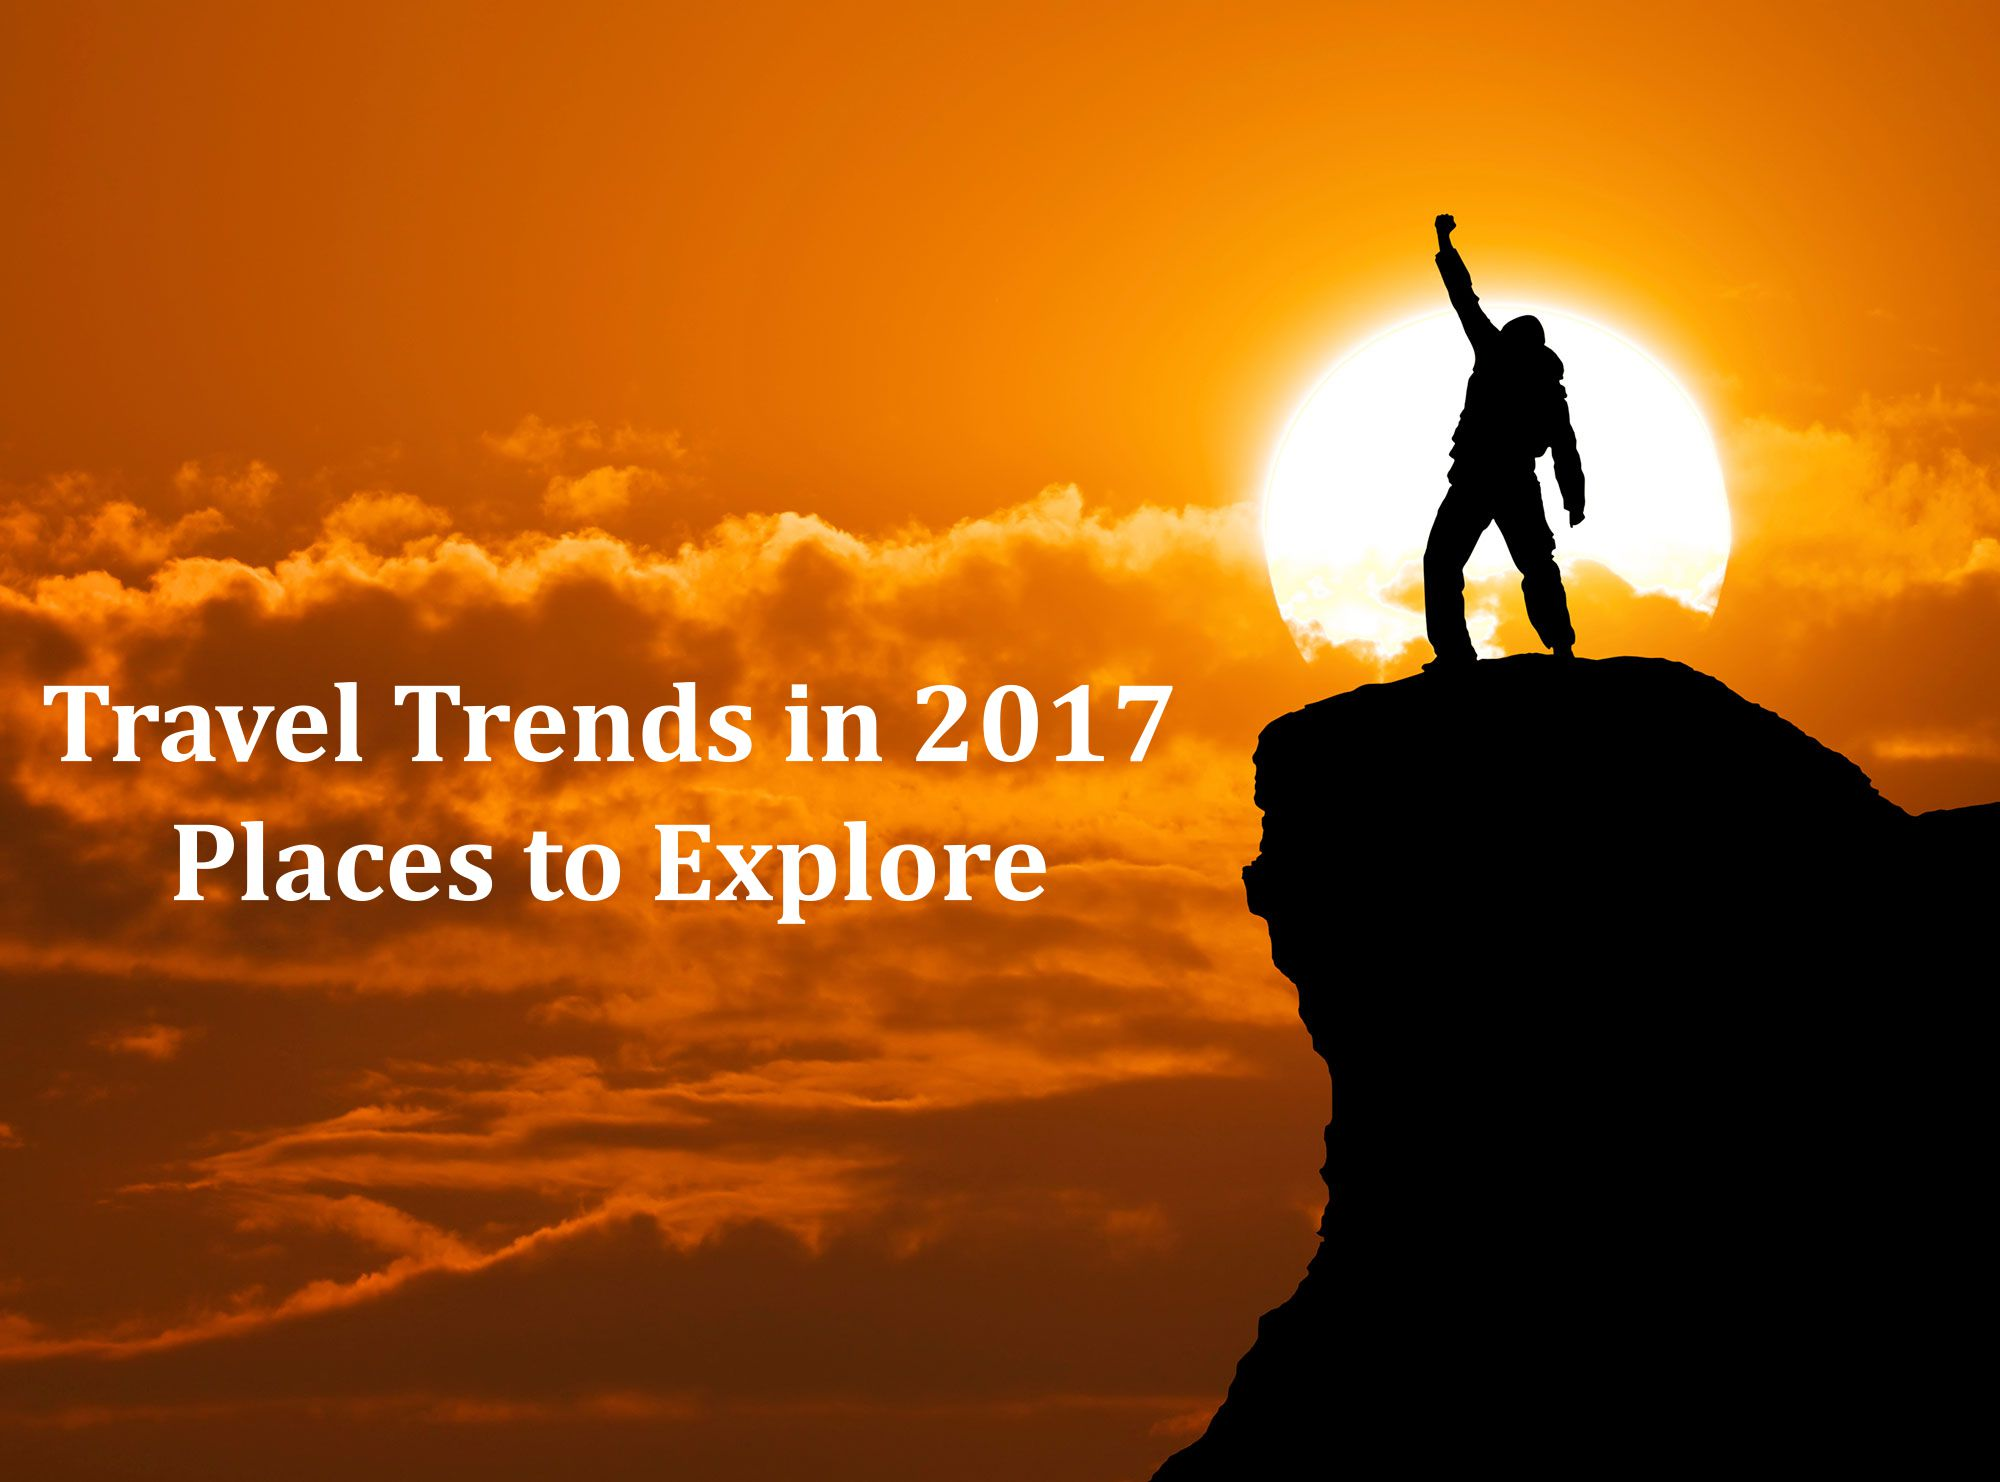 Travel Trends in 2017